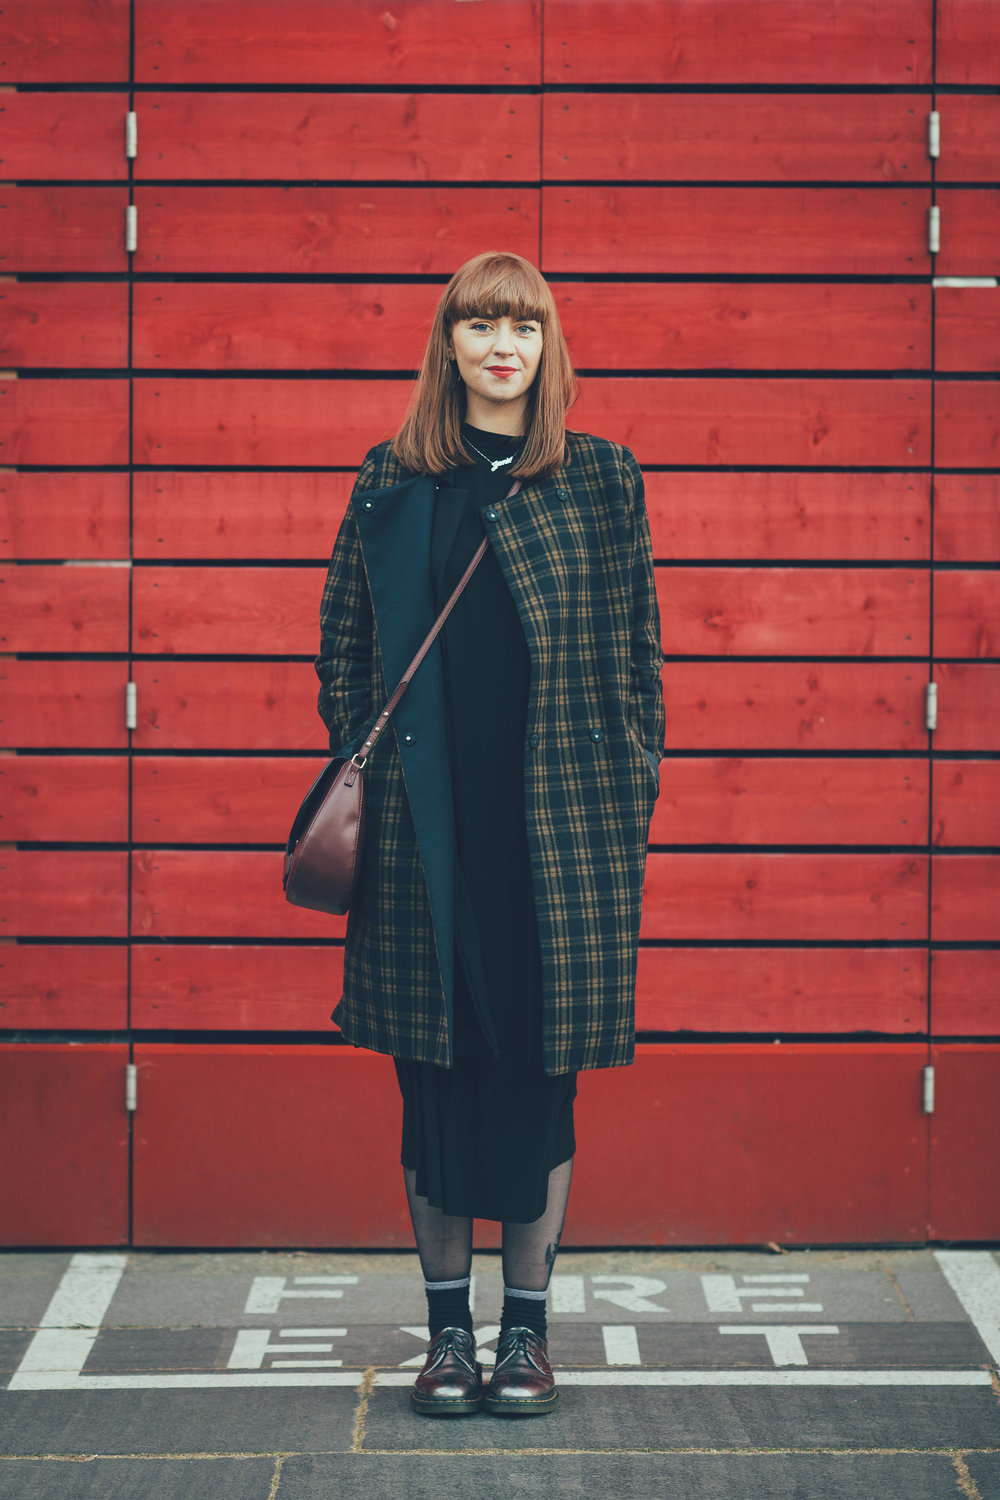 Redhead standing in front of red wall at the National Theatre London